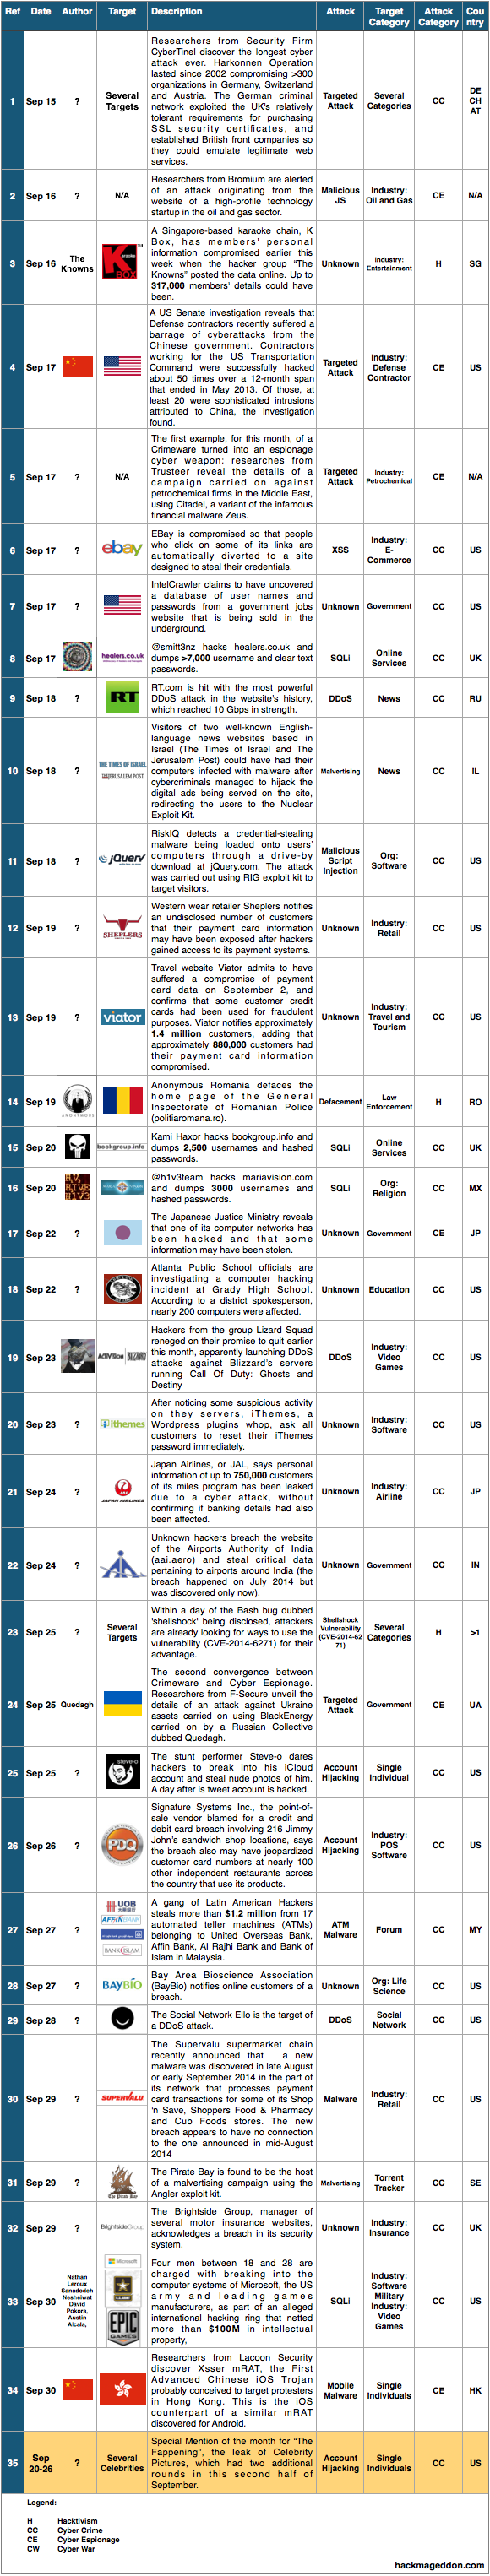 16-30 September 2014 Cyber Attacks Timeline